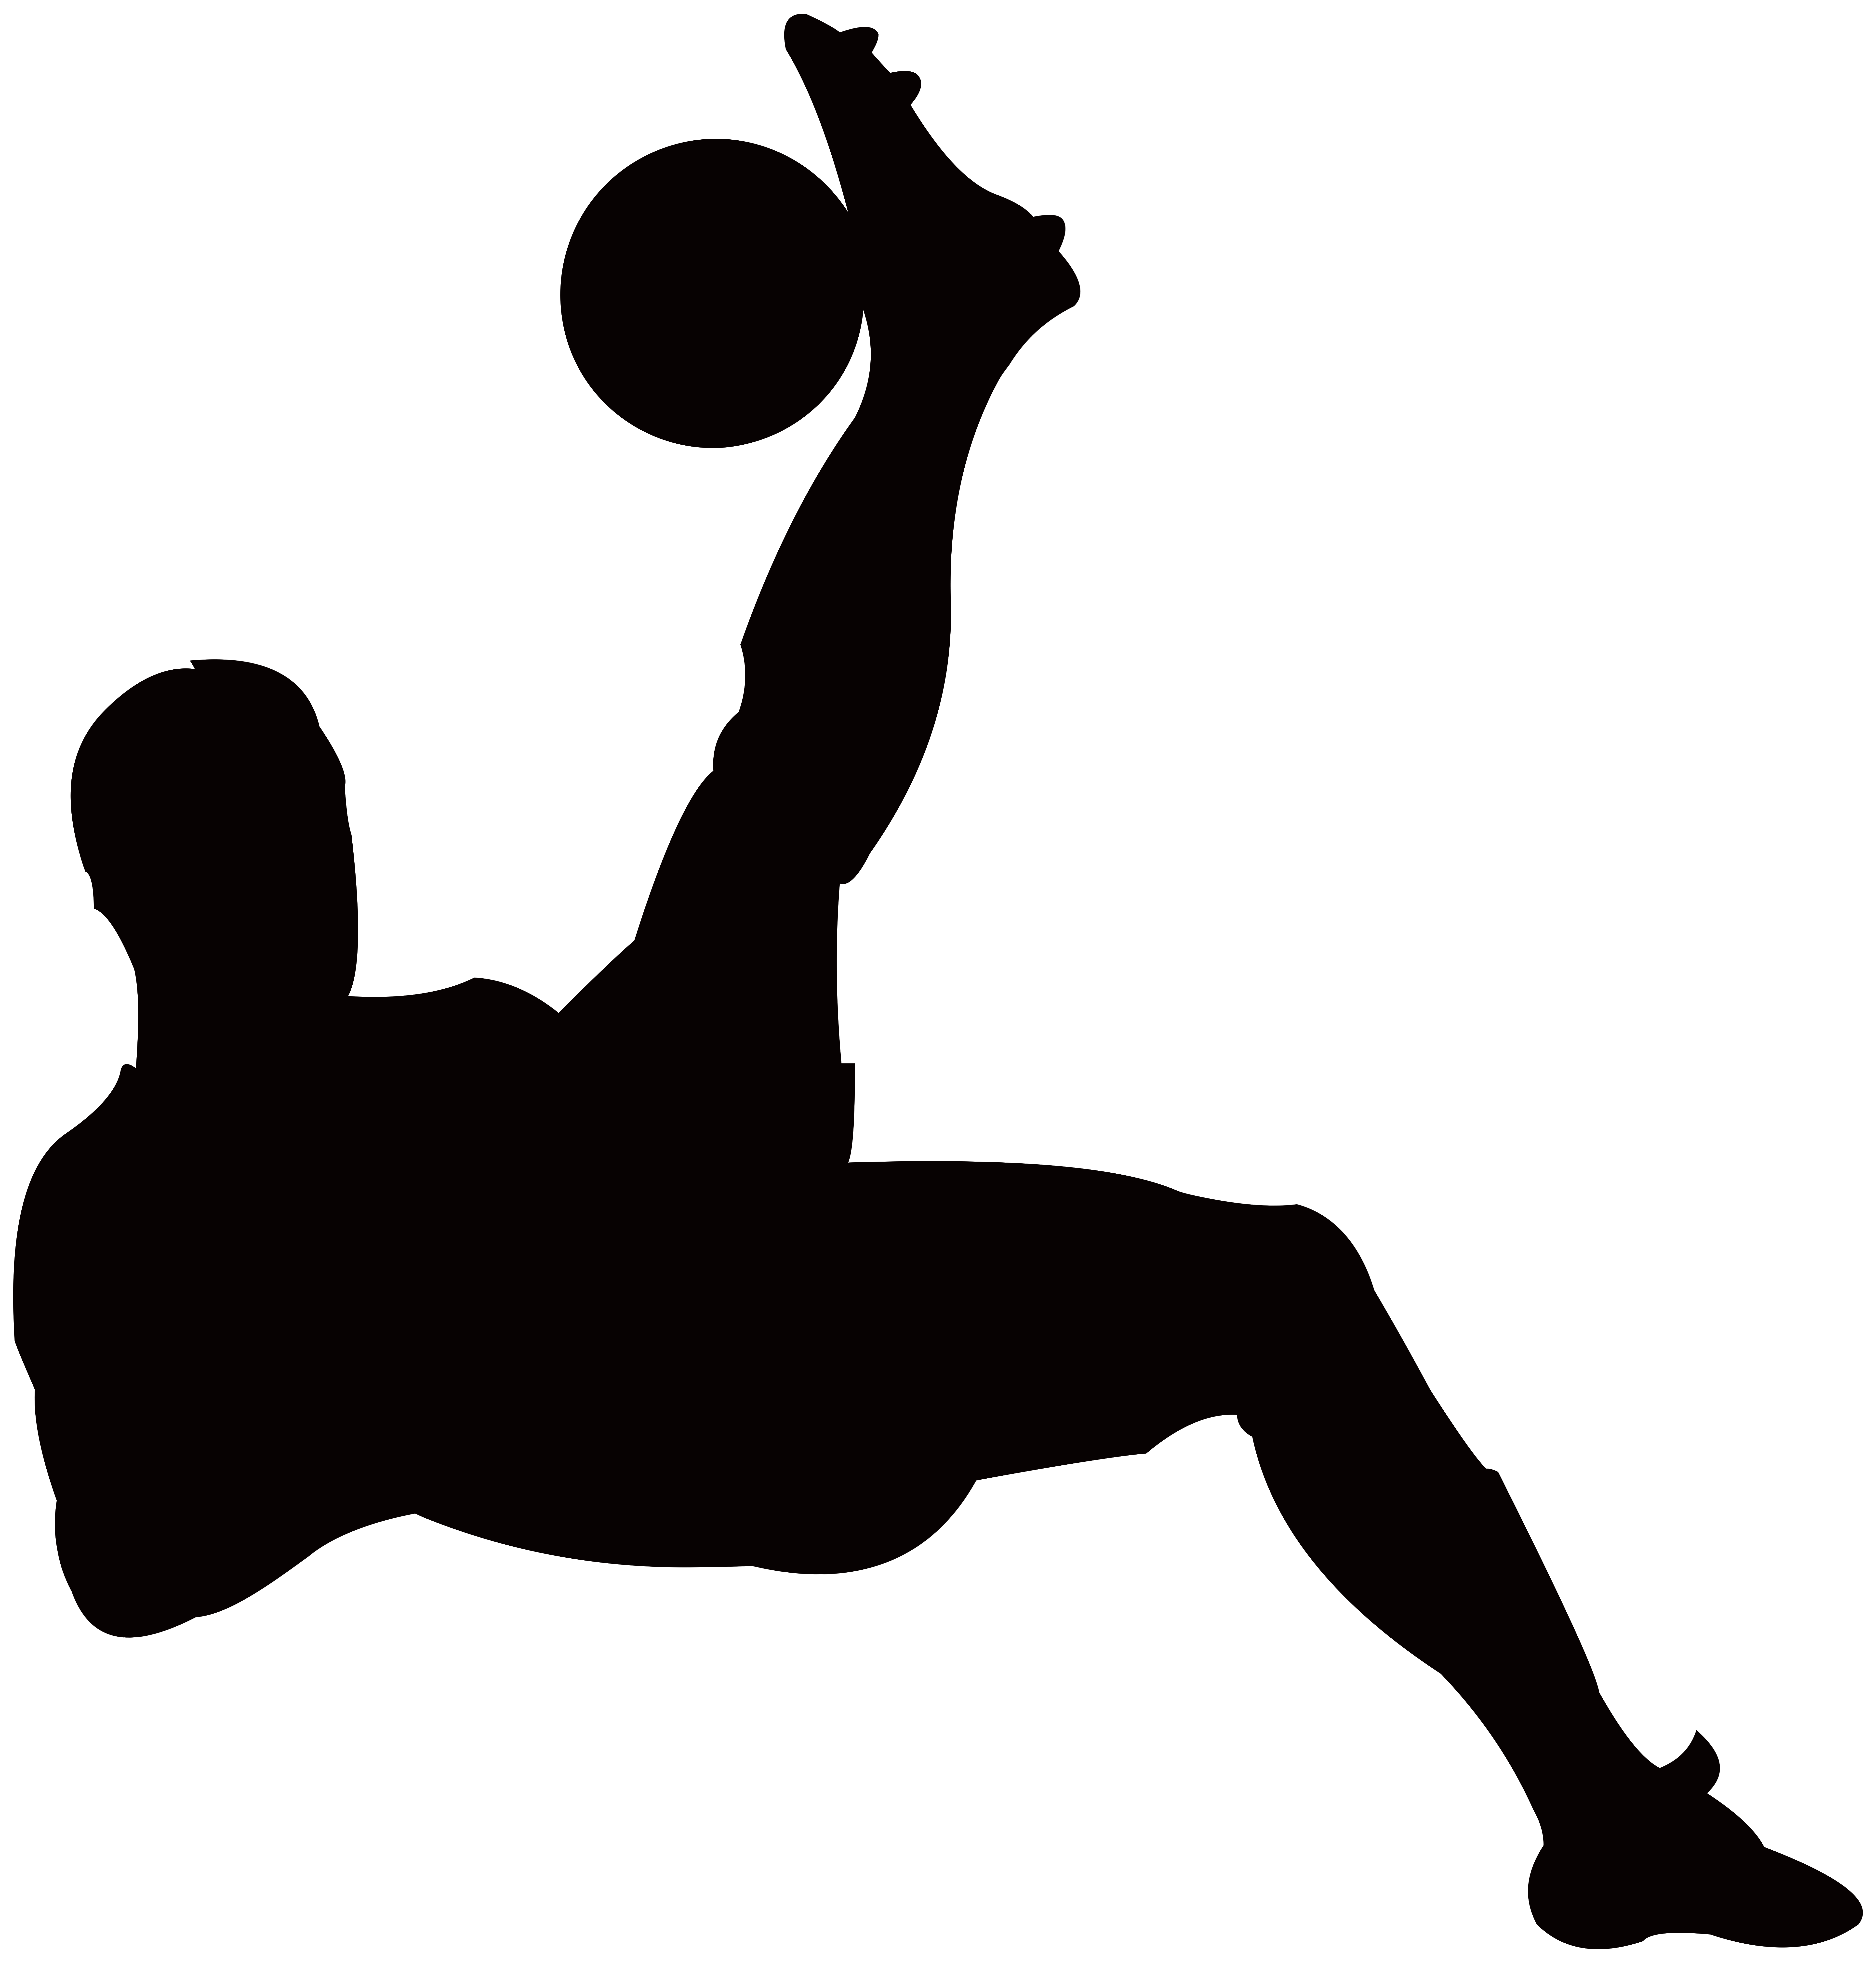 7645x8000 Football Player Silhouette Transparent Png Clip Art Image